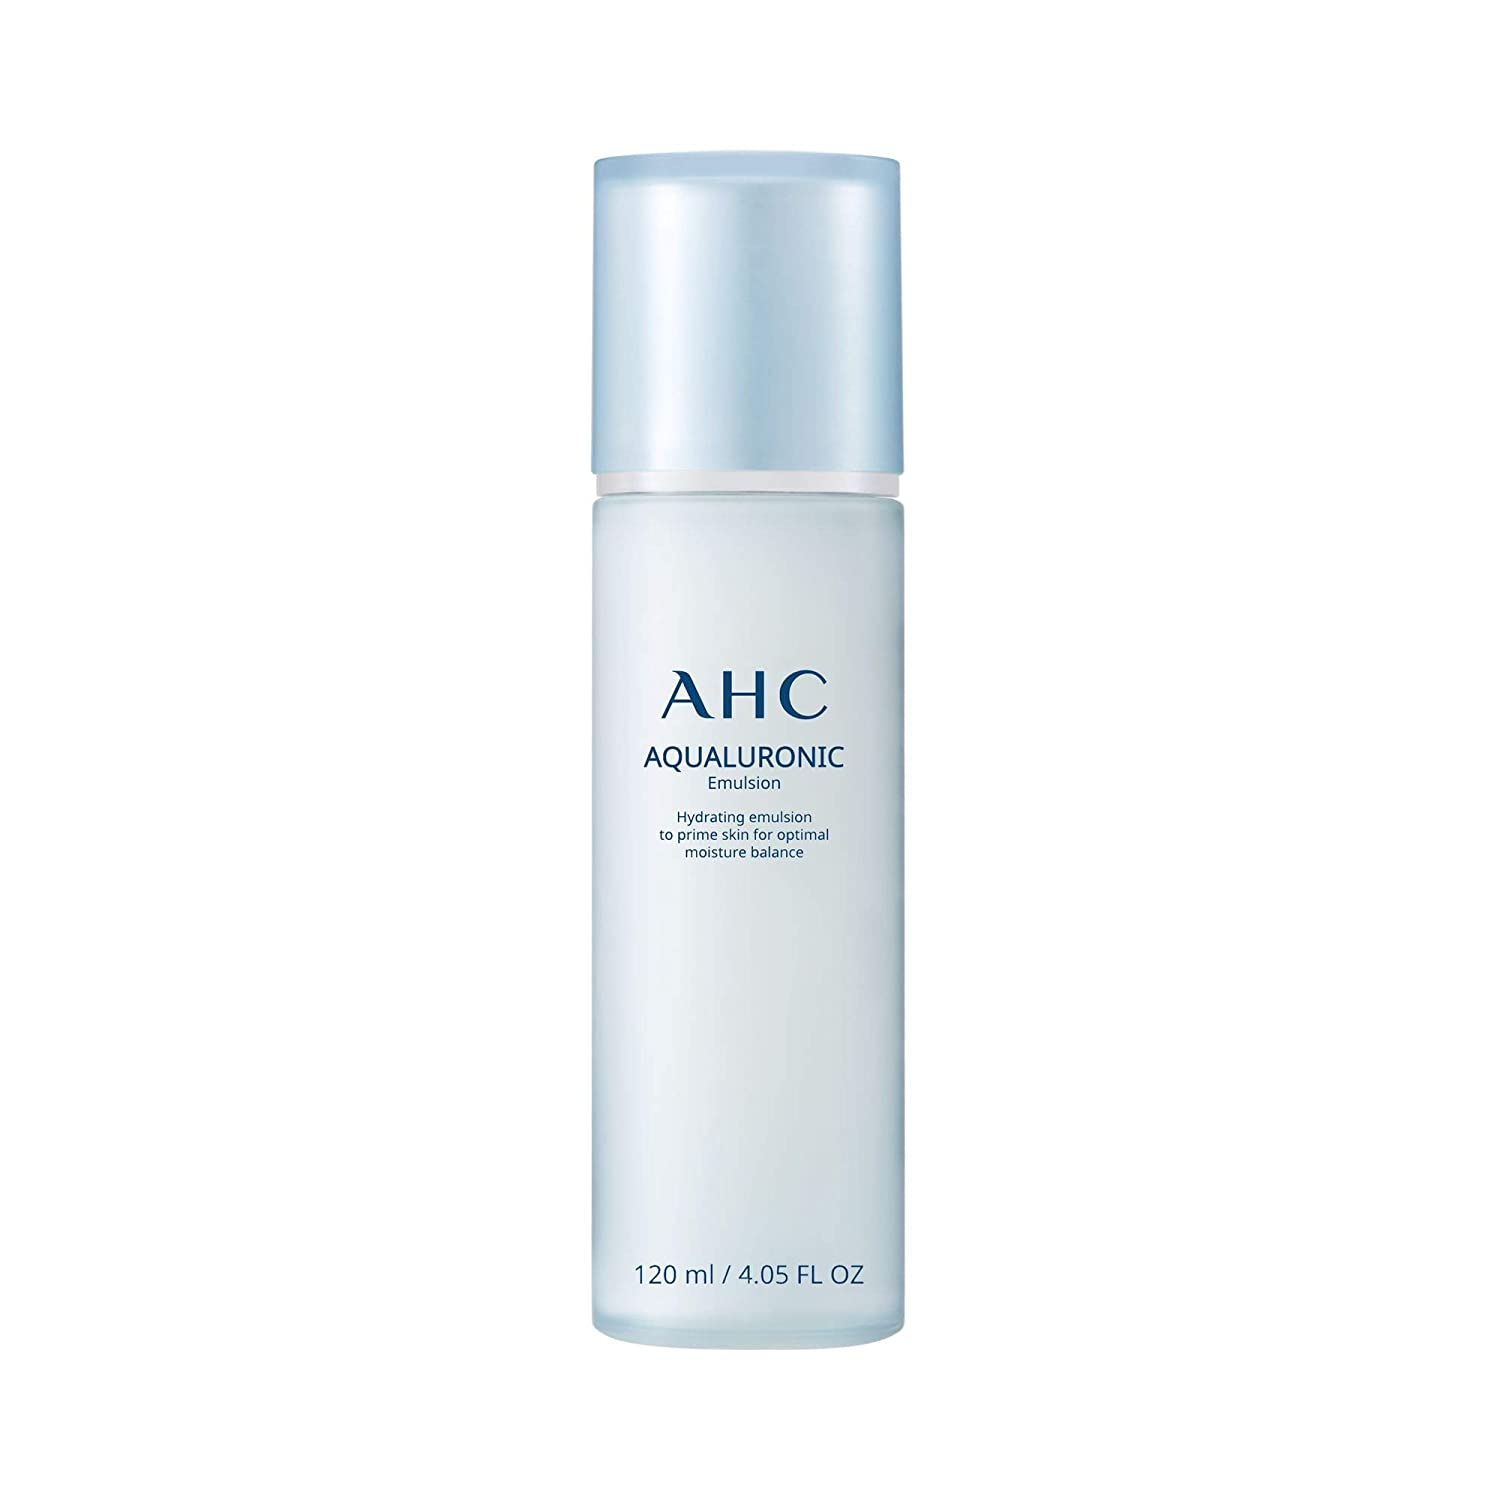 AHC Aqualuronic Emulsion for Dehydrated Skin Triple Hyaluronic Acid Face Lotion Korean Skincare 4.05 oz